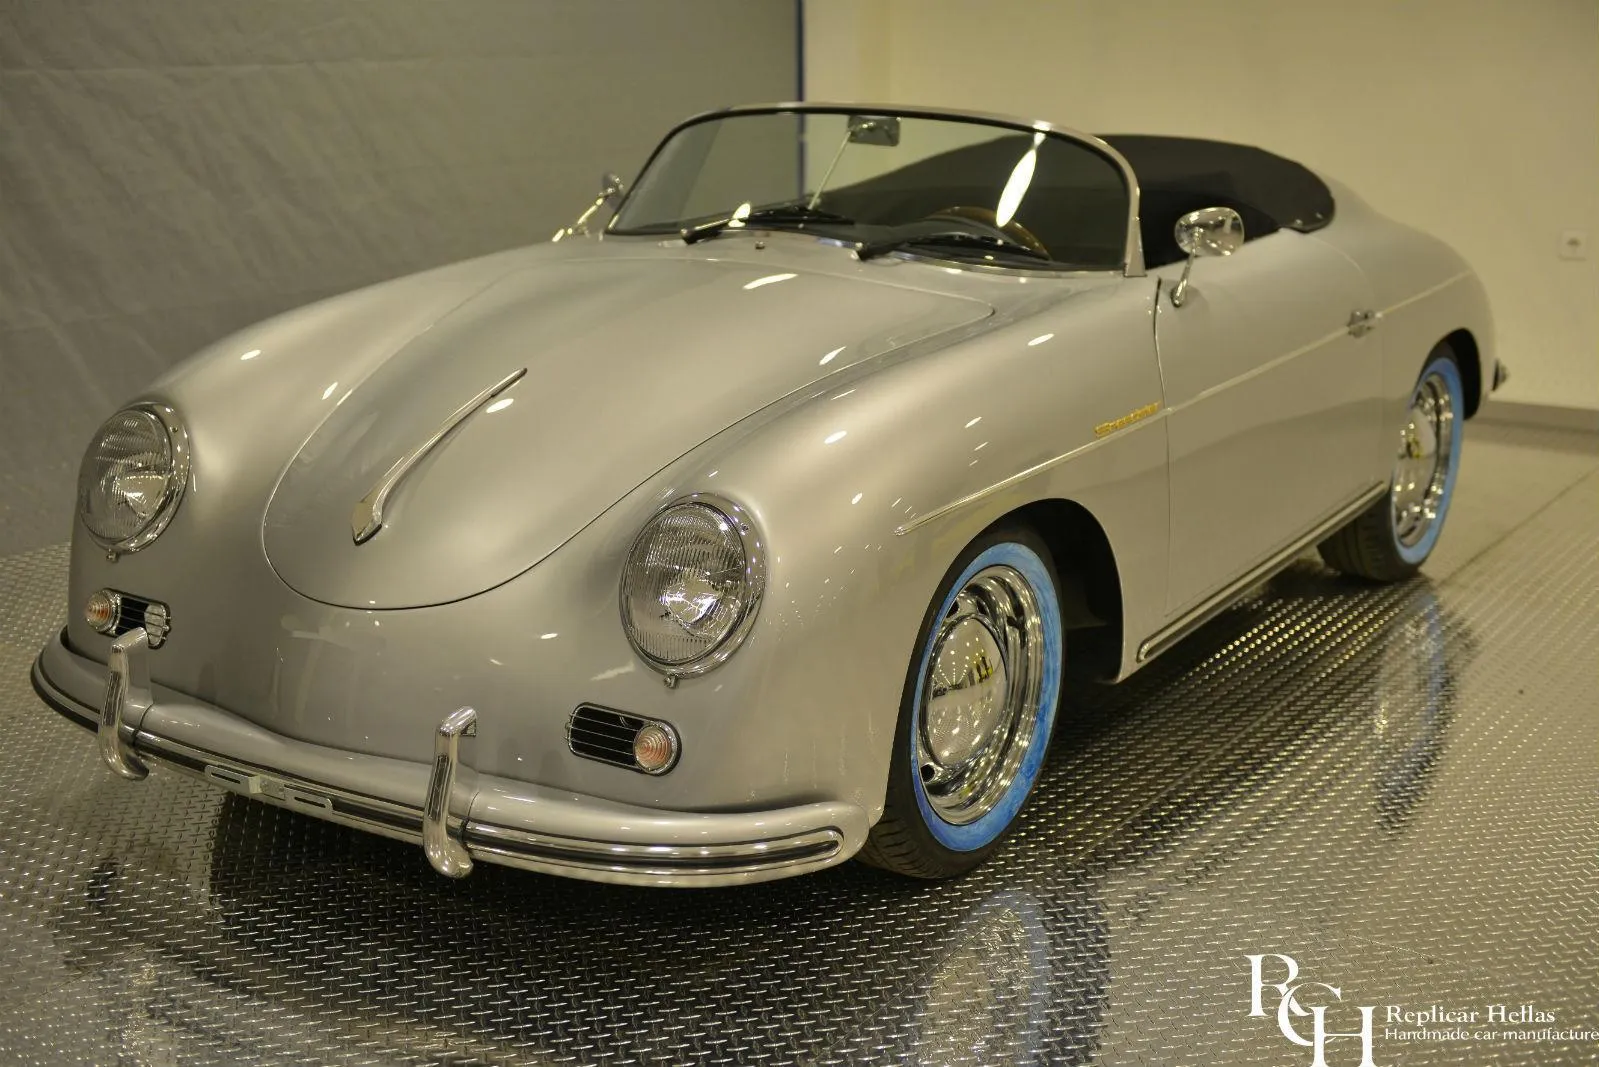 Classic Lhd Rch New 356 Speedster Replica Finally Avai For Sale